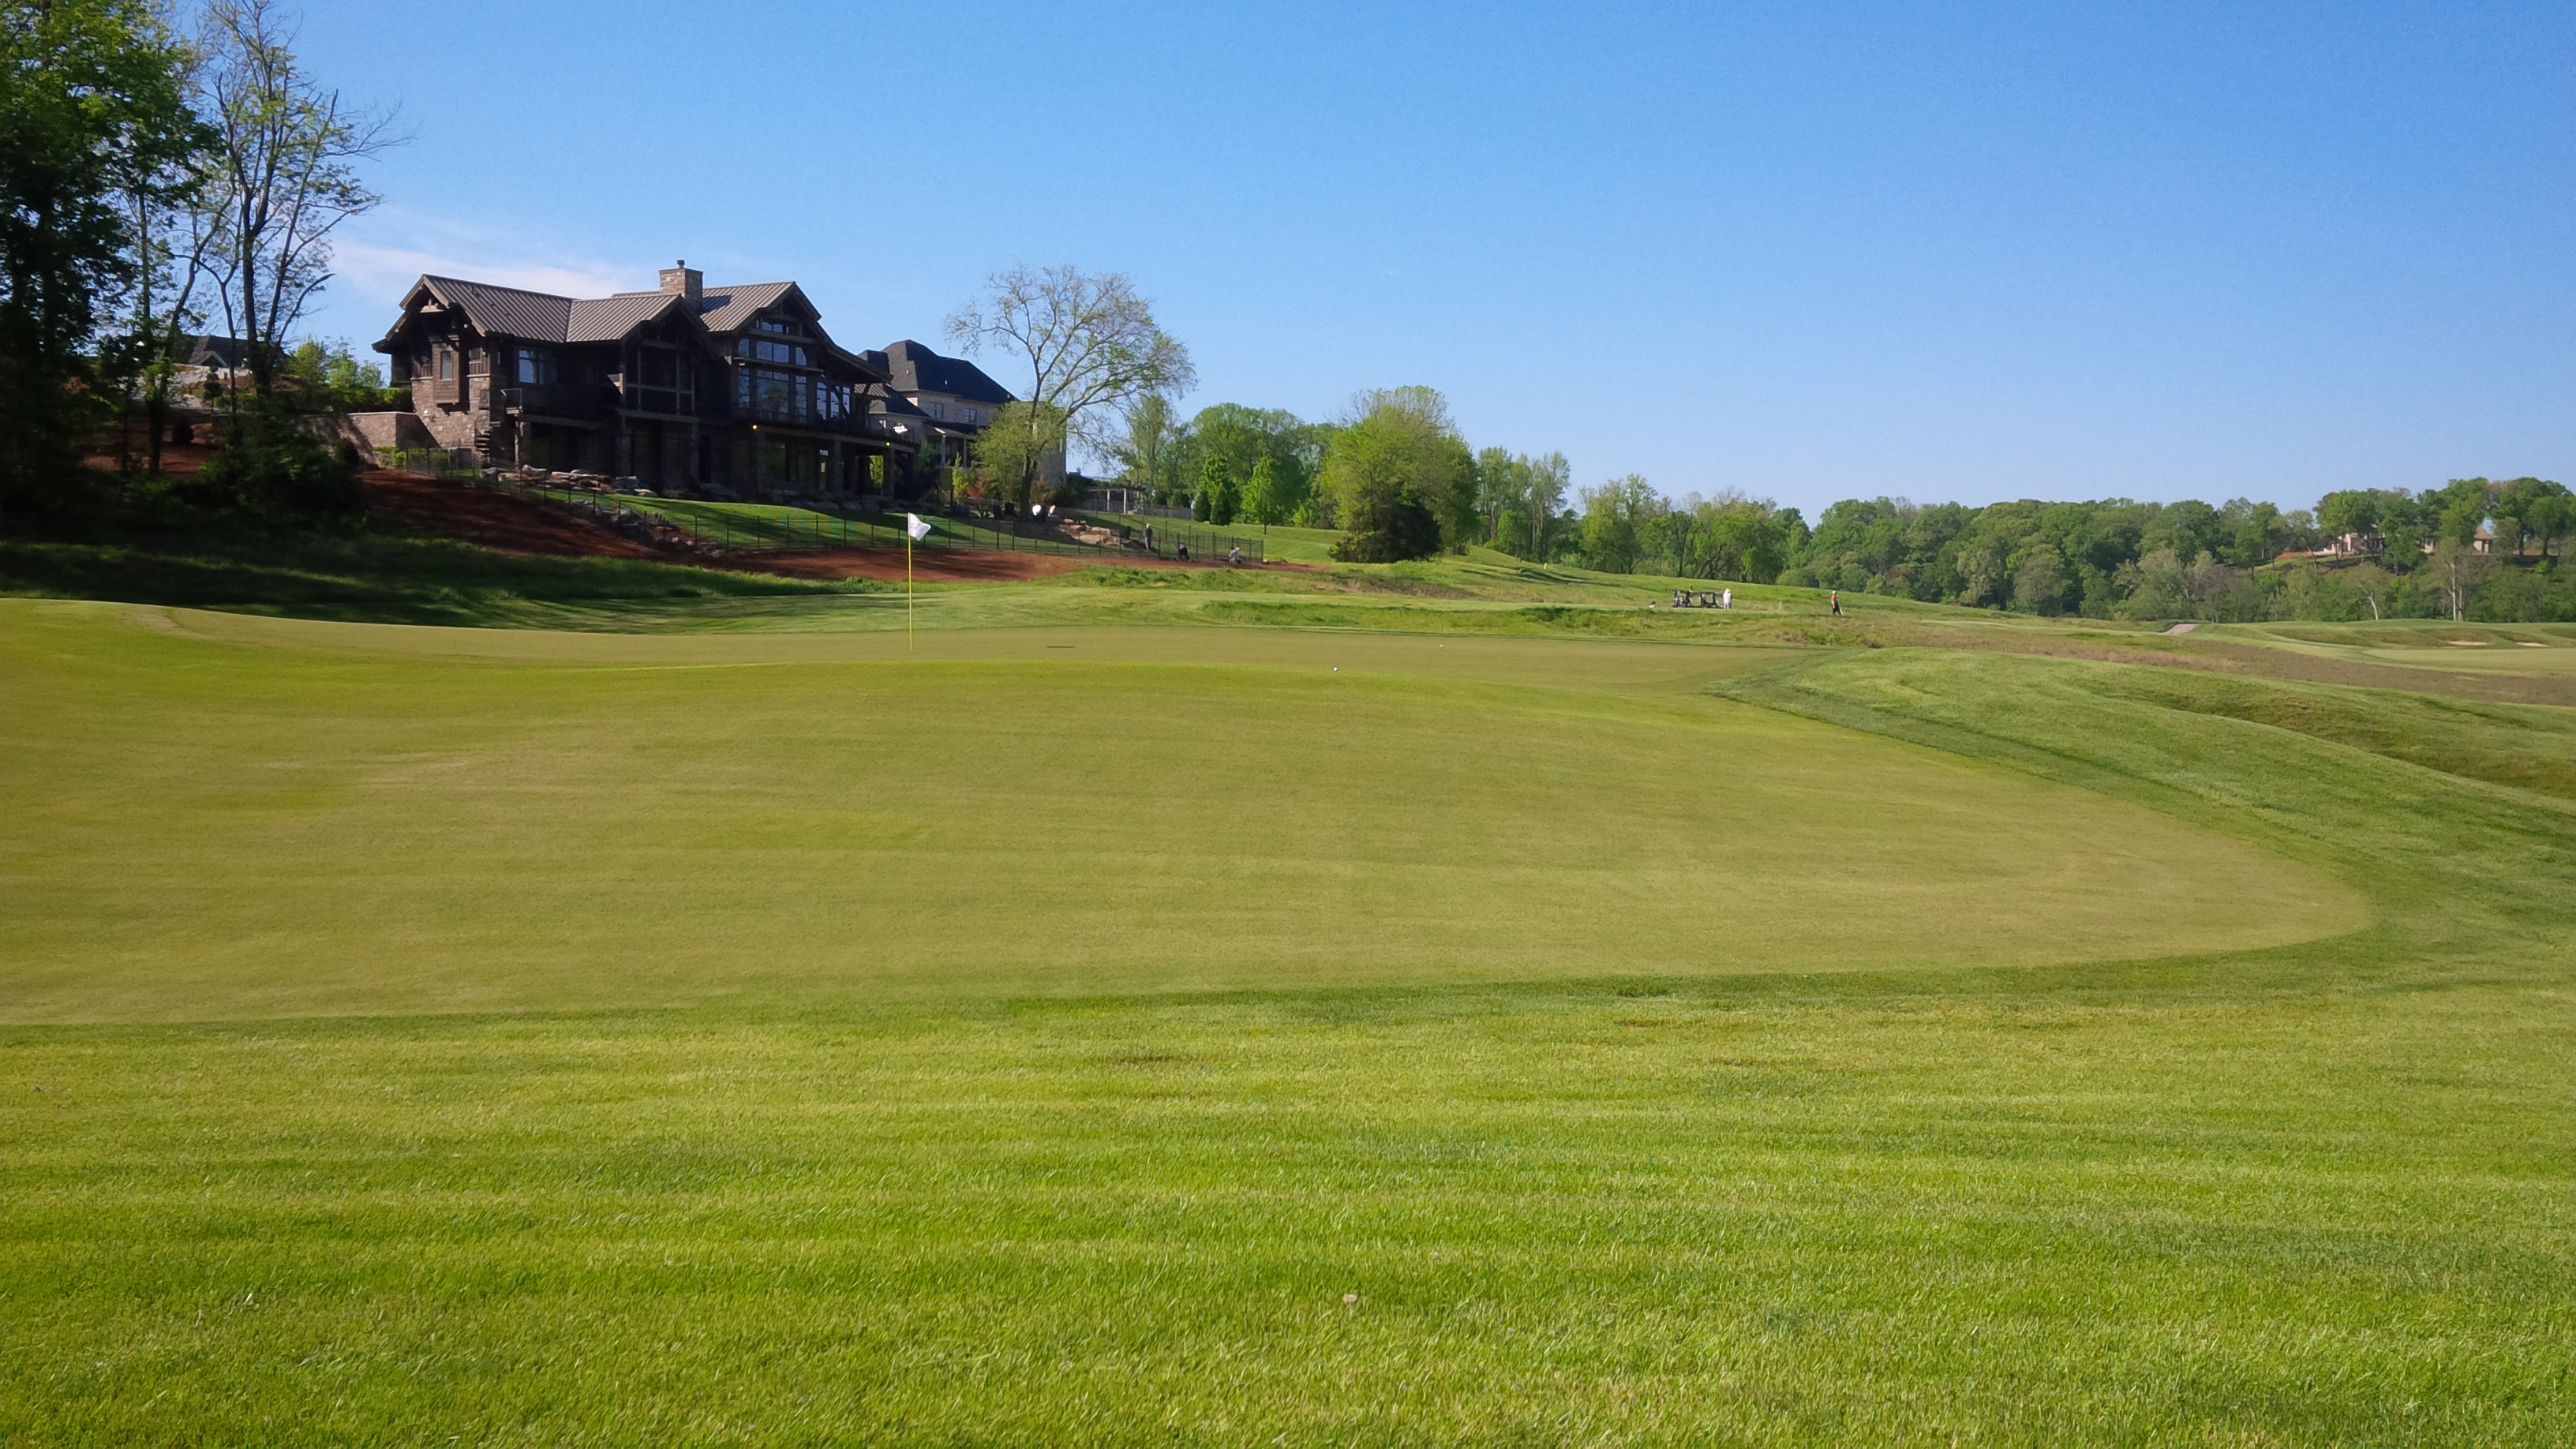 Stupendous The Club At Olde Stone The Crown Jewel Of Mid South Golf Interior Design Ideas Jittwwsoteloinfo